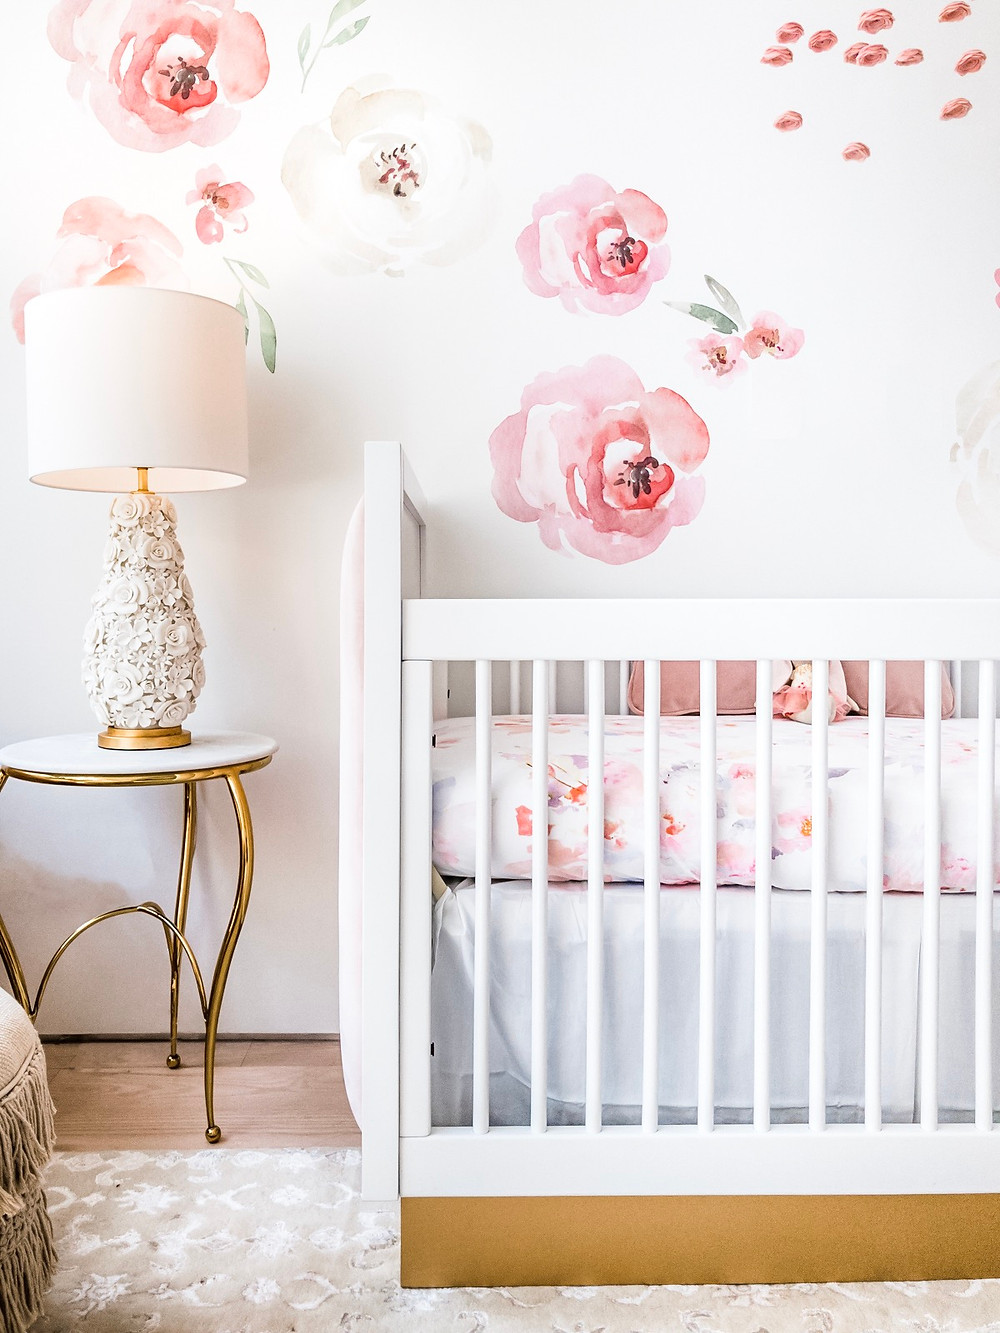 Boho nursery, floral wallpaper, pink rose gold and white, chic, watercolor flowers